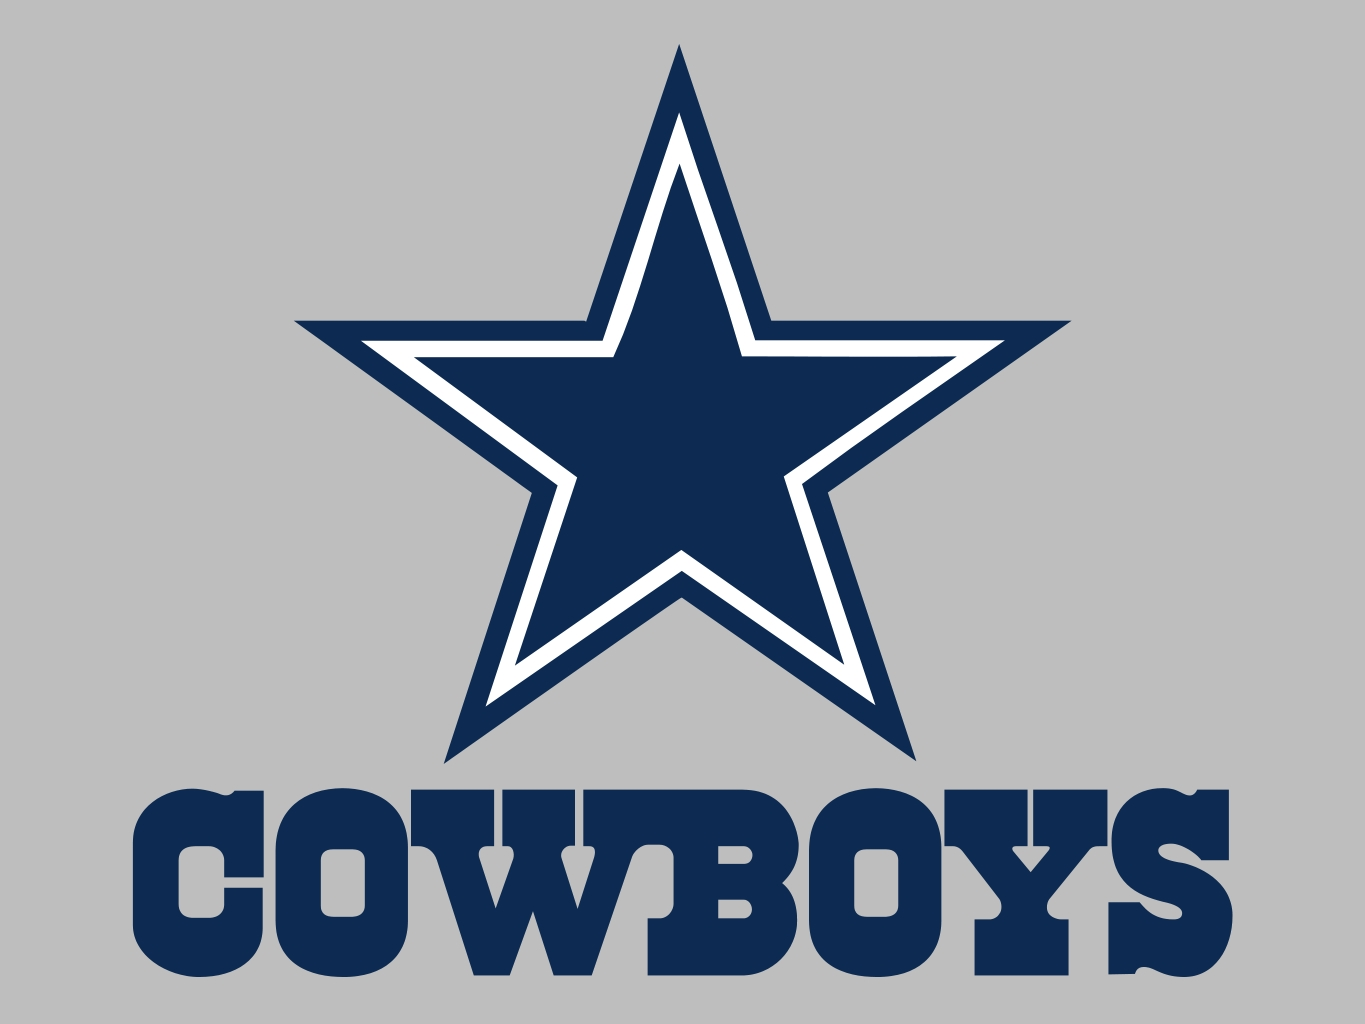 3 Stars from Dallas Cowboys Win Over the Atlanta Falcons